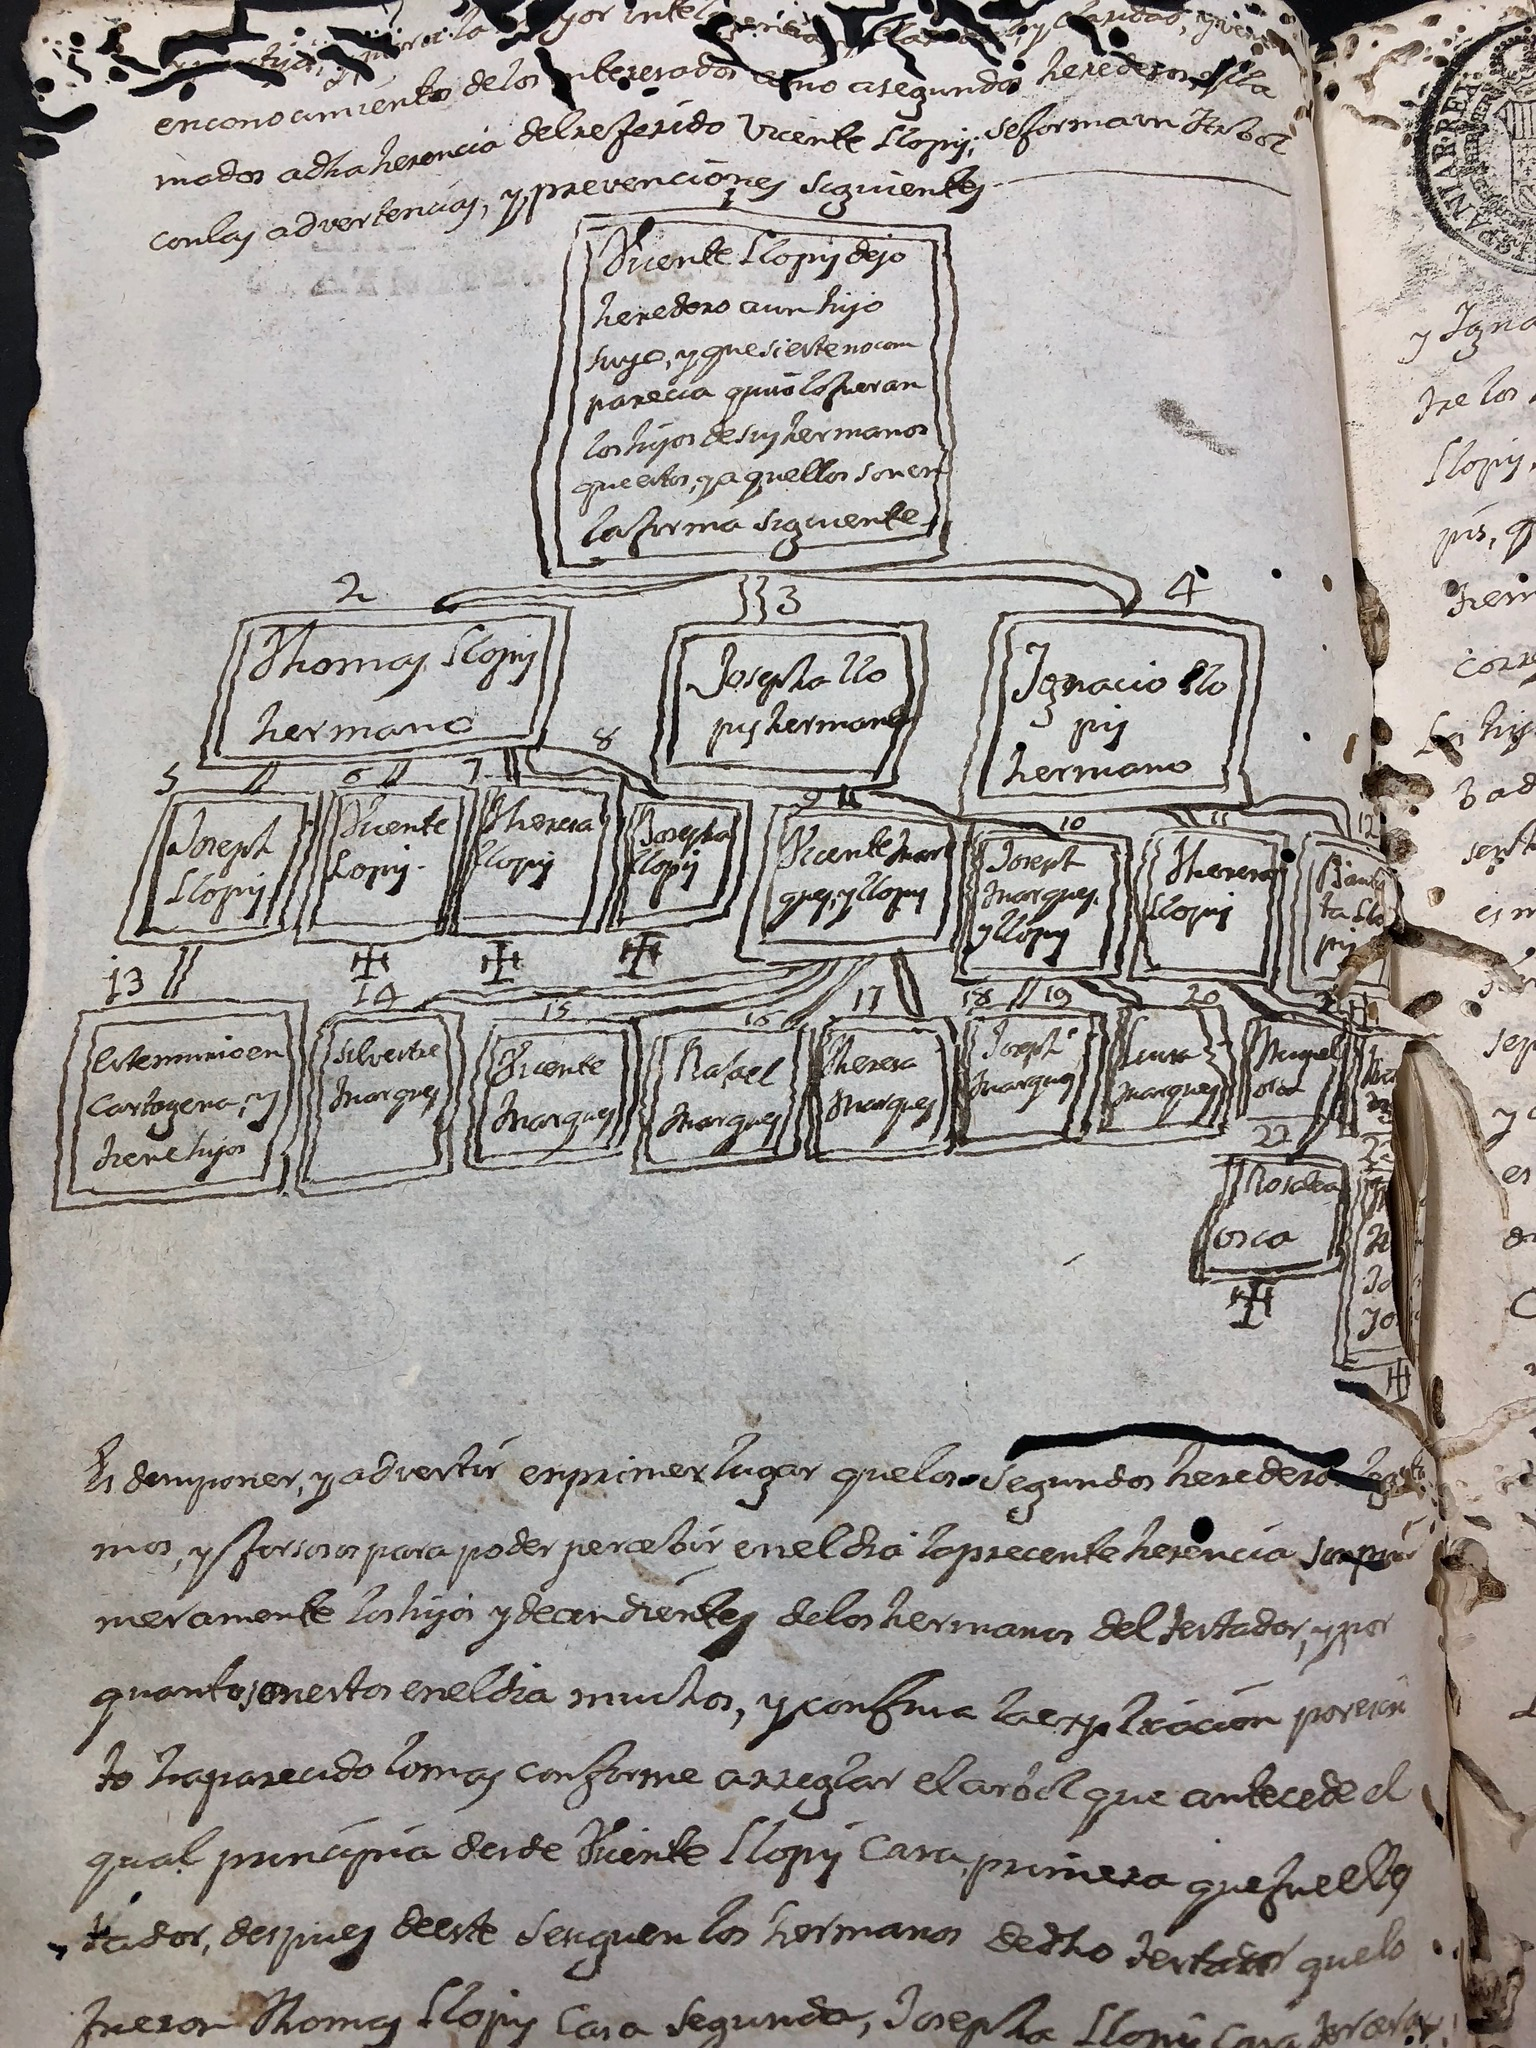 Genealogy in a notary book scanned to be used for online family history work. Senior missionaries Sister Rife and Sister Klafke are currently serving in Spain on a records preservation mission.